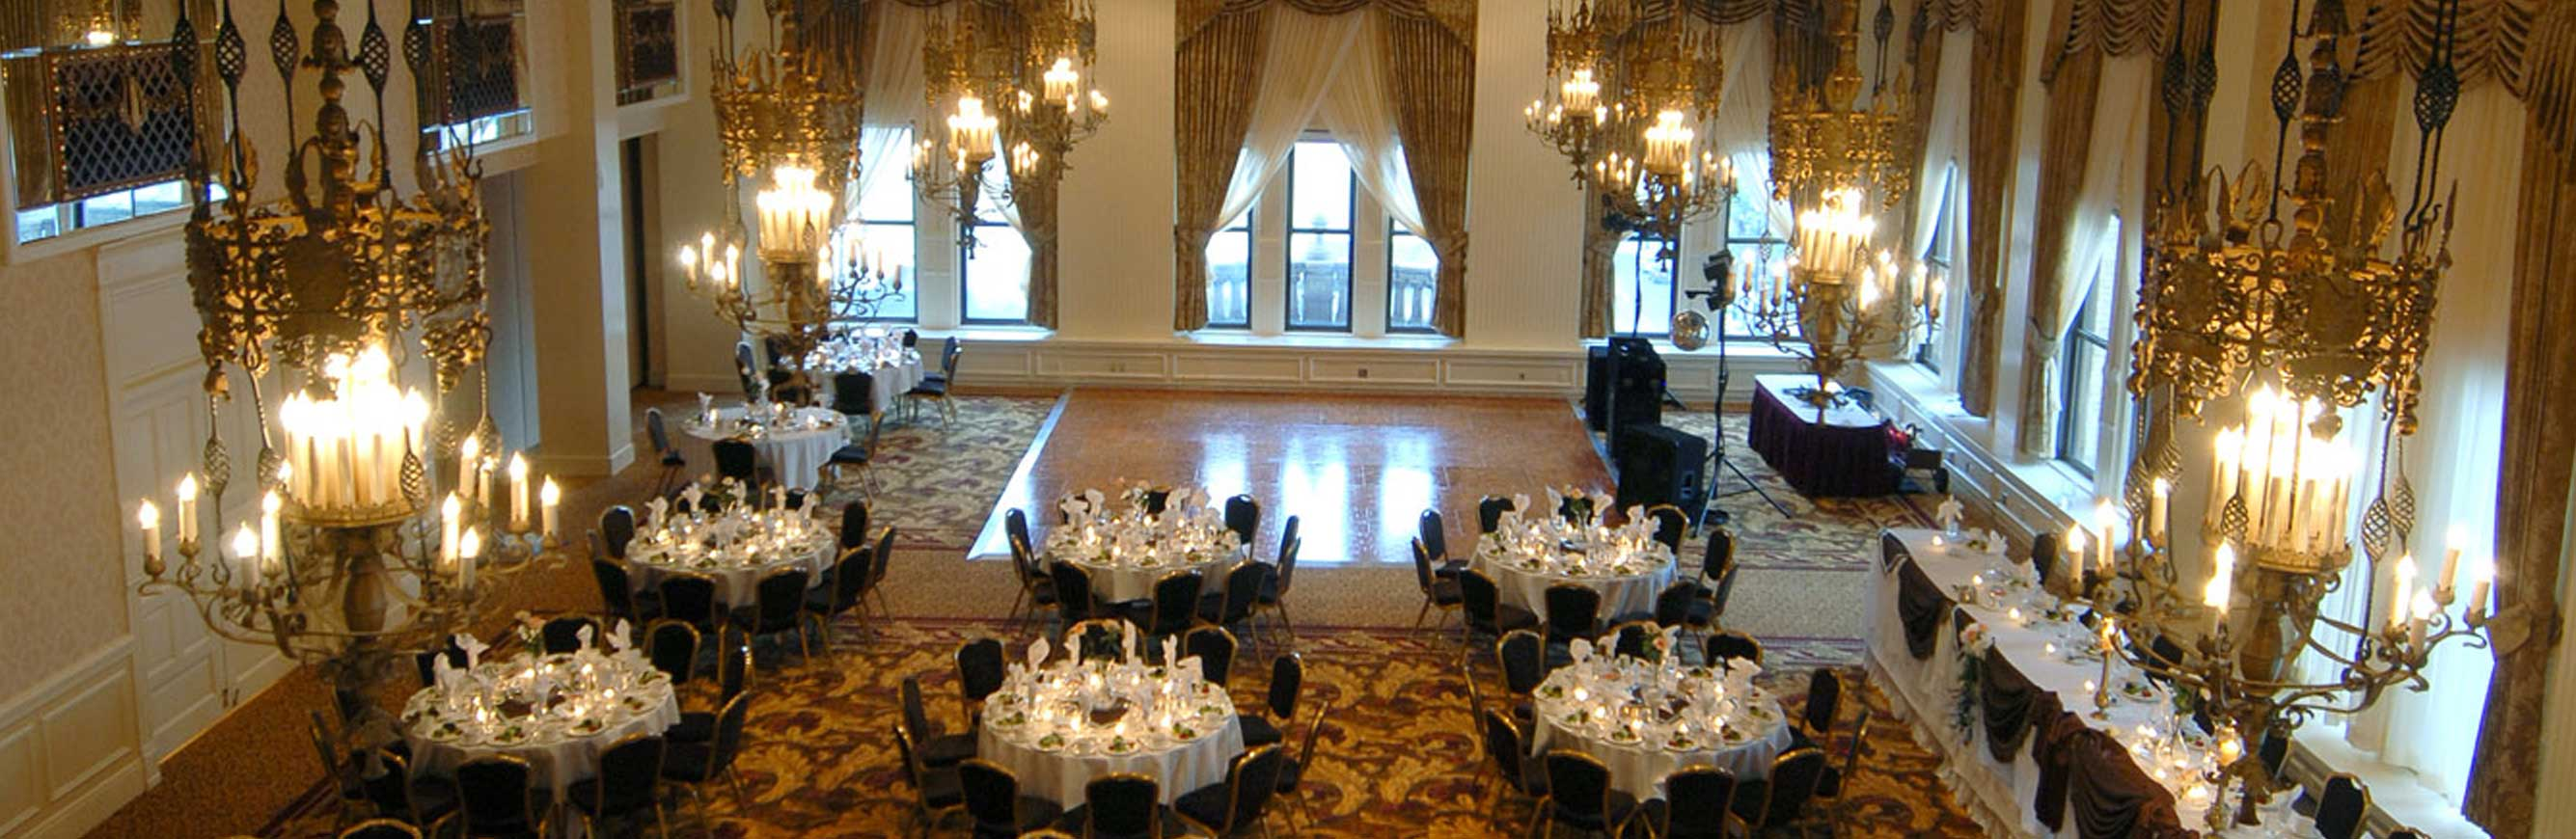 Milwaukee Wedding Venues & Hotel Ballrooms | The Pfister Hotel